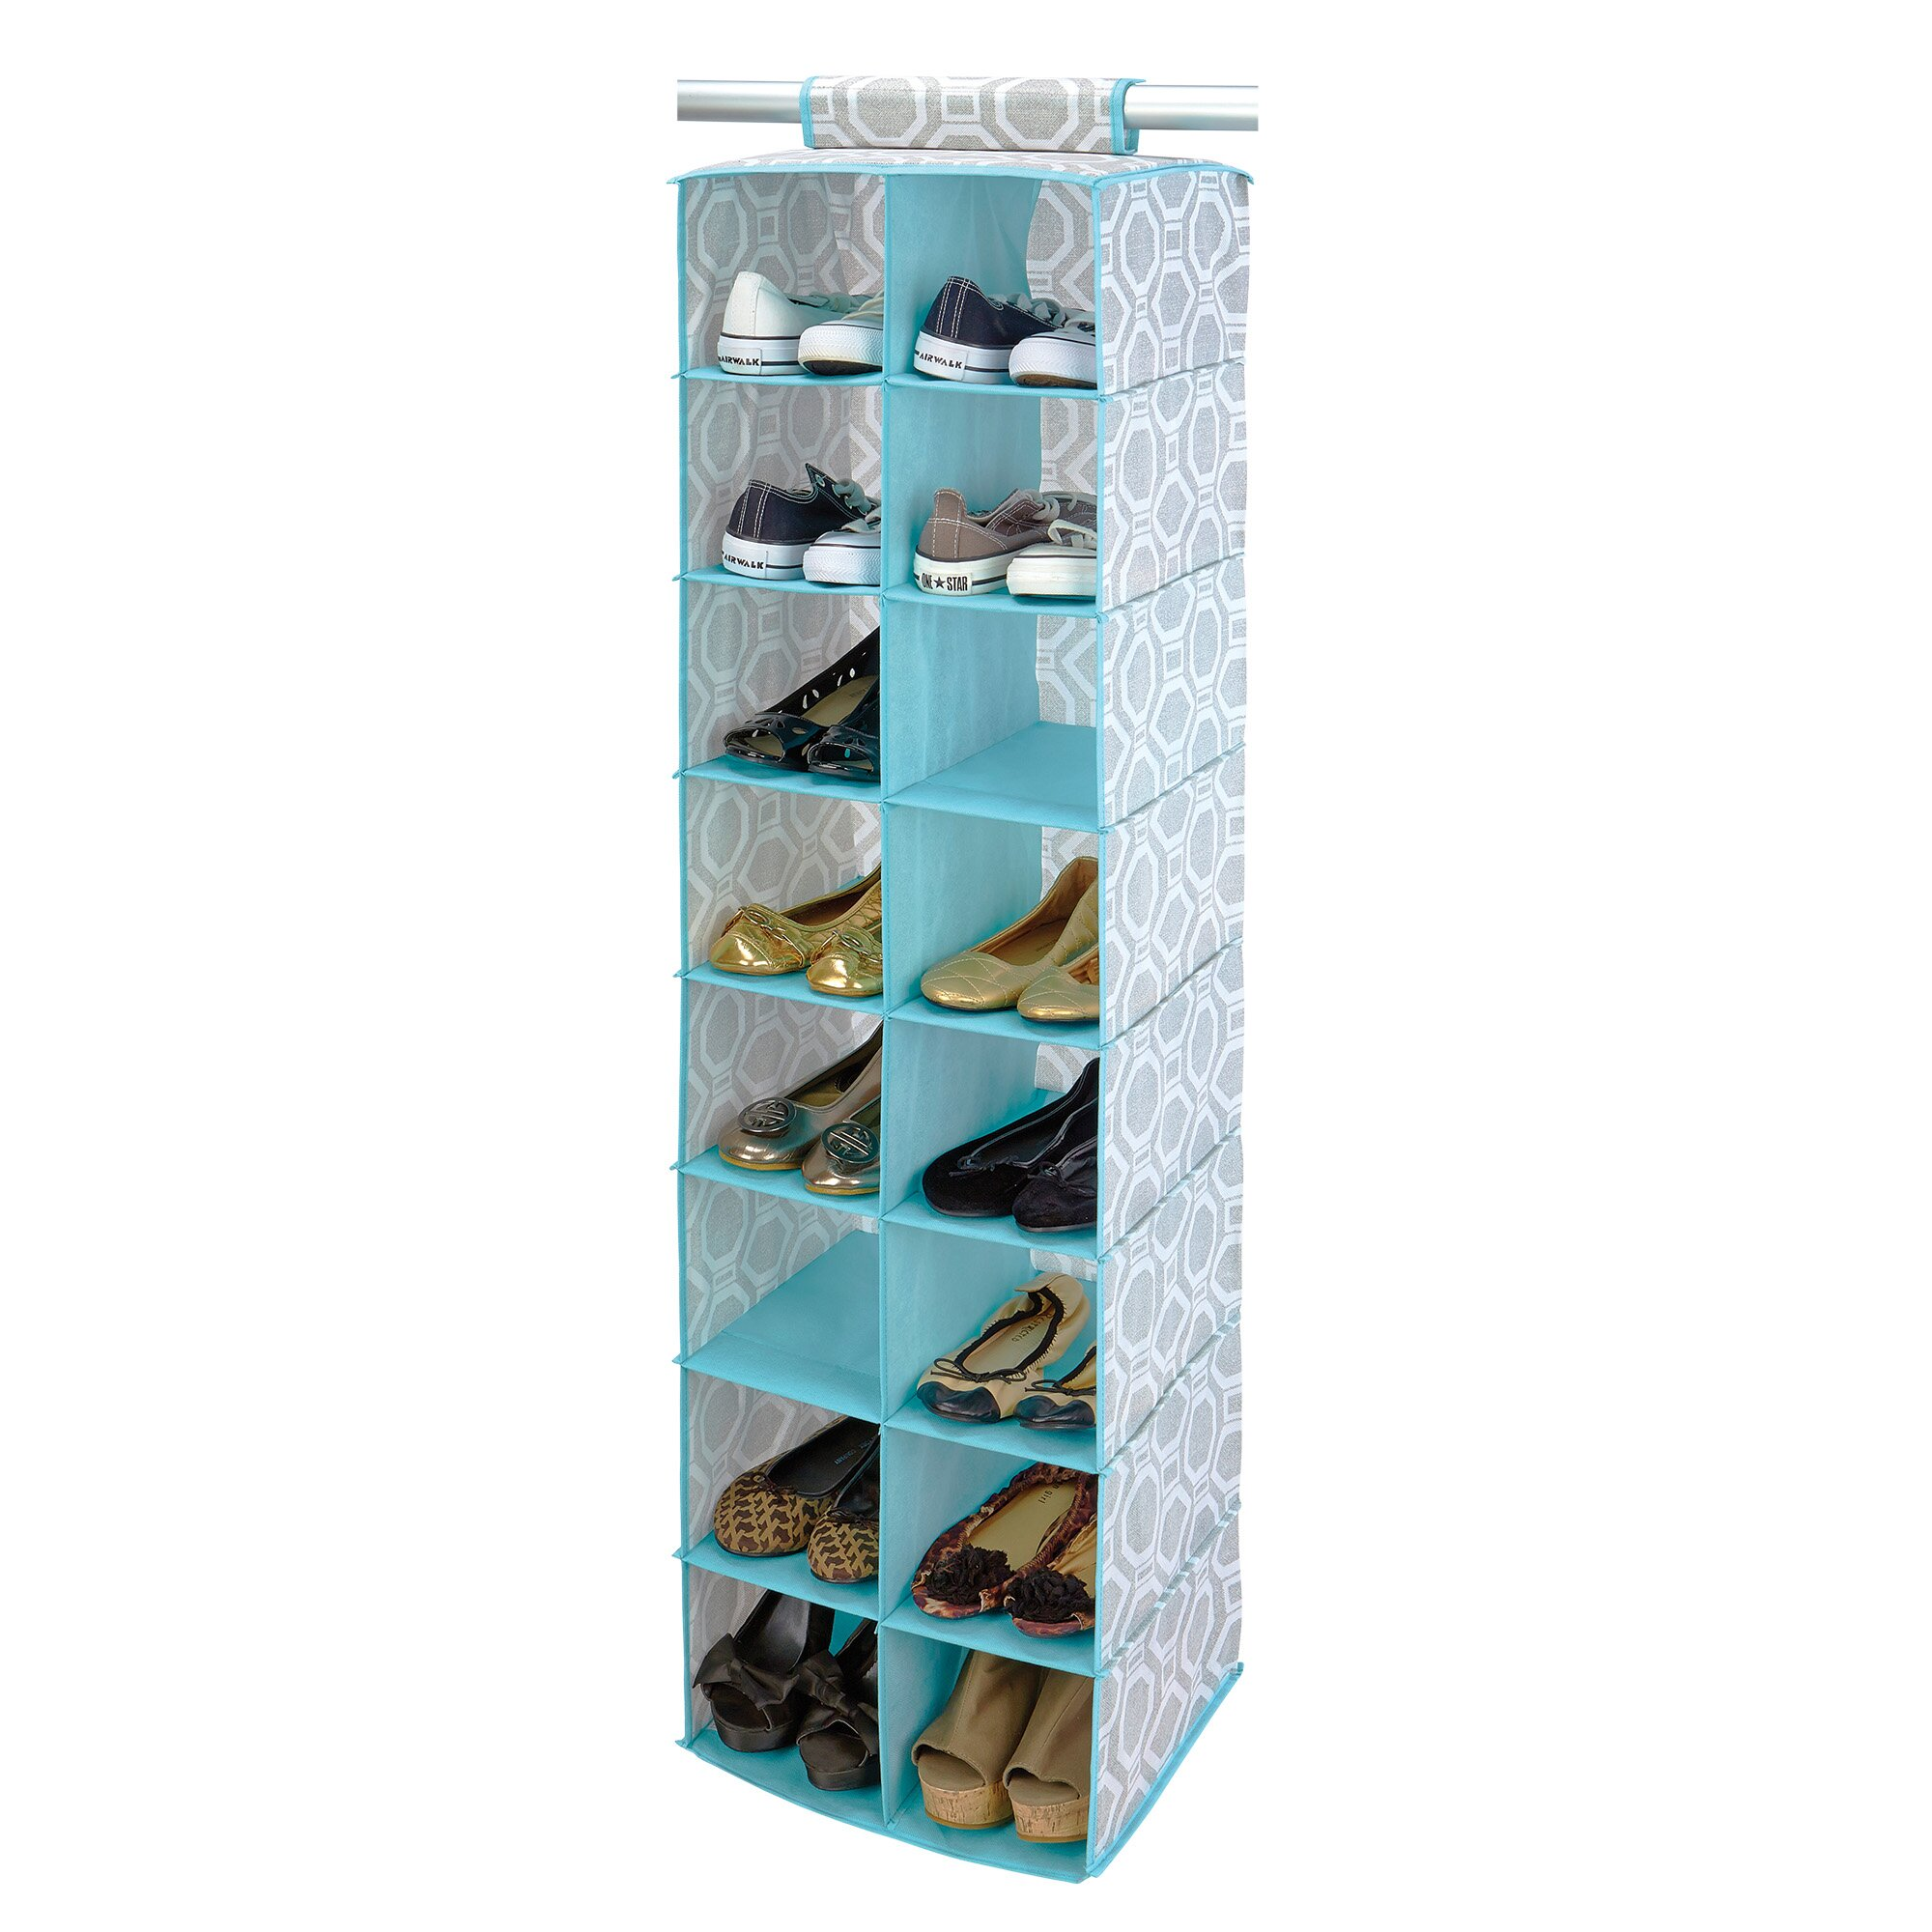 Closet Candie Dove 16 Compartment Hanging Shoe Organizer